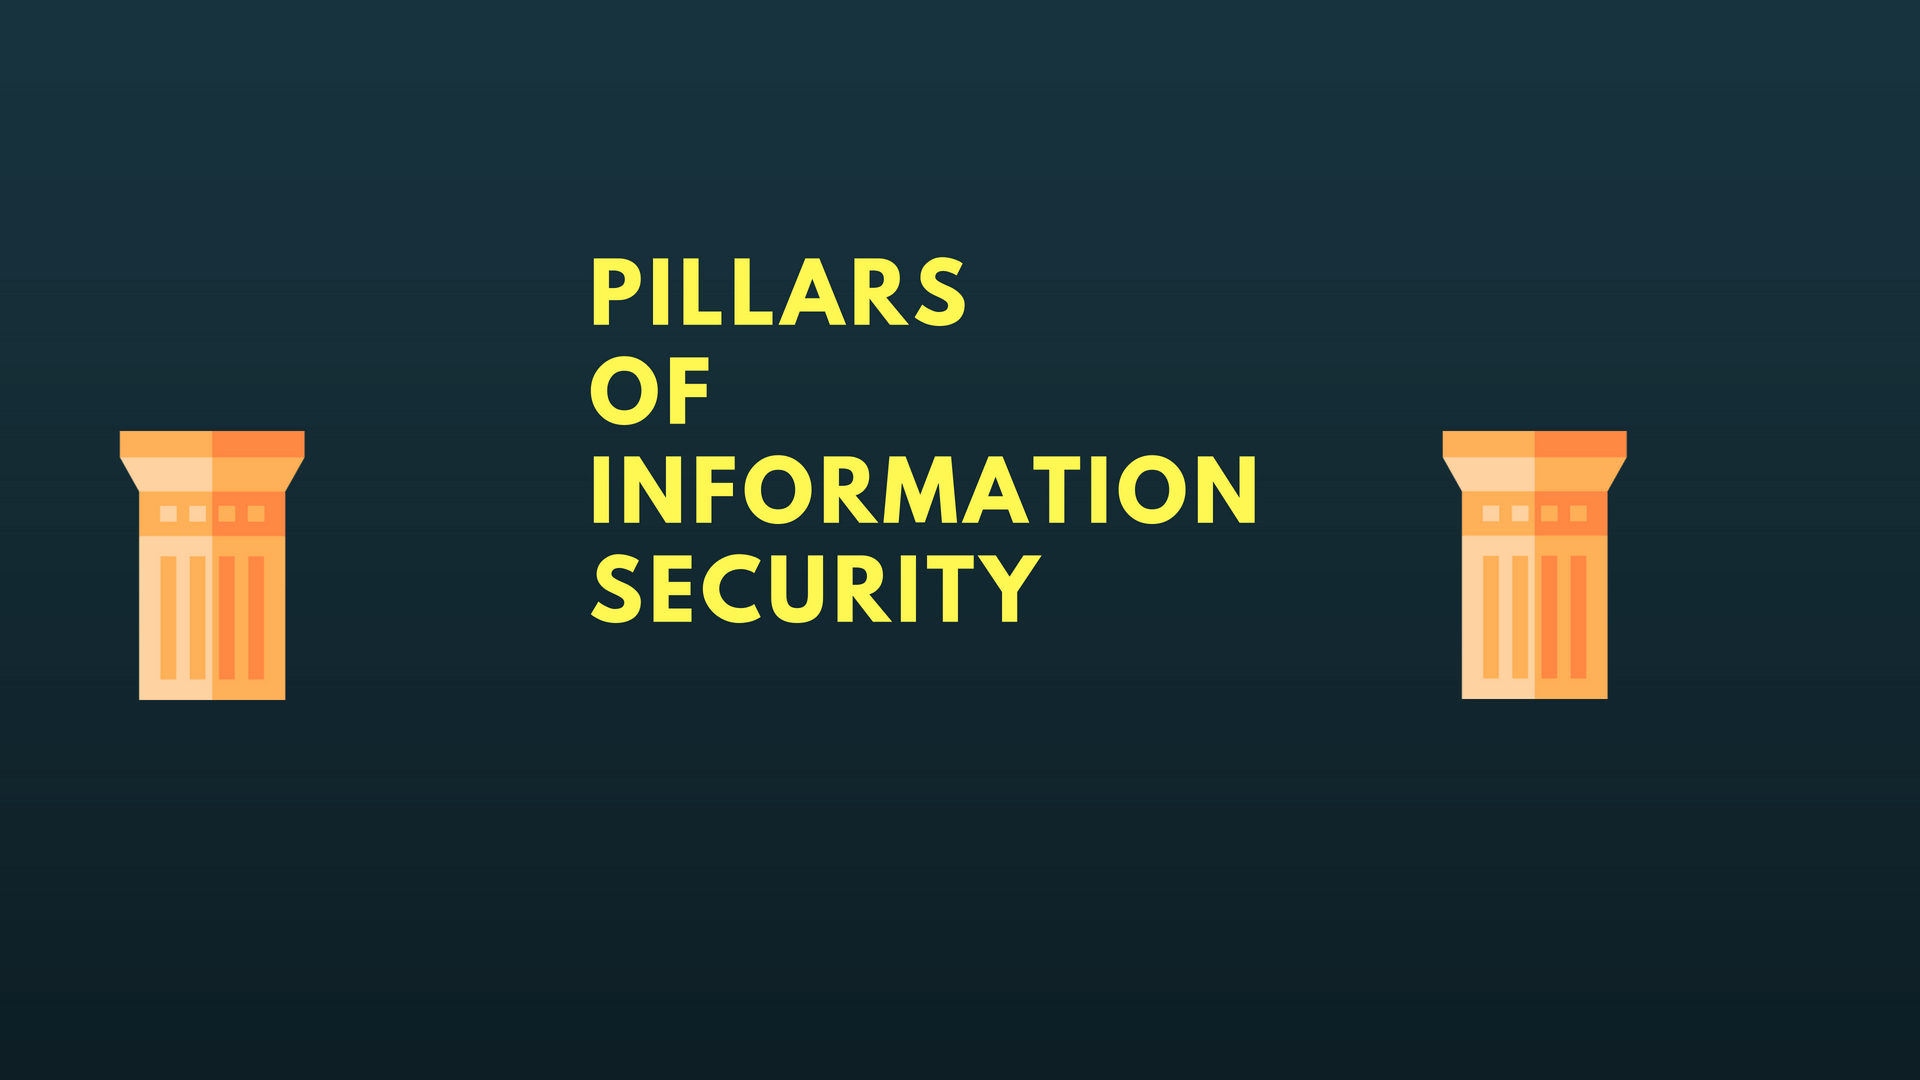 Pillars of Information Security